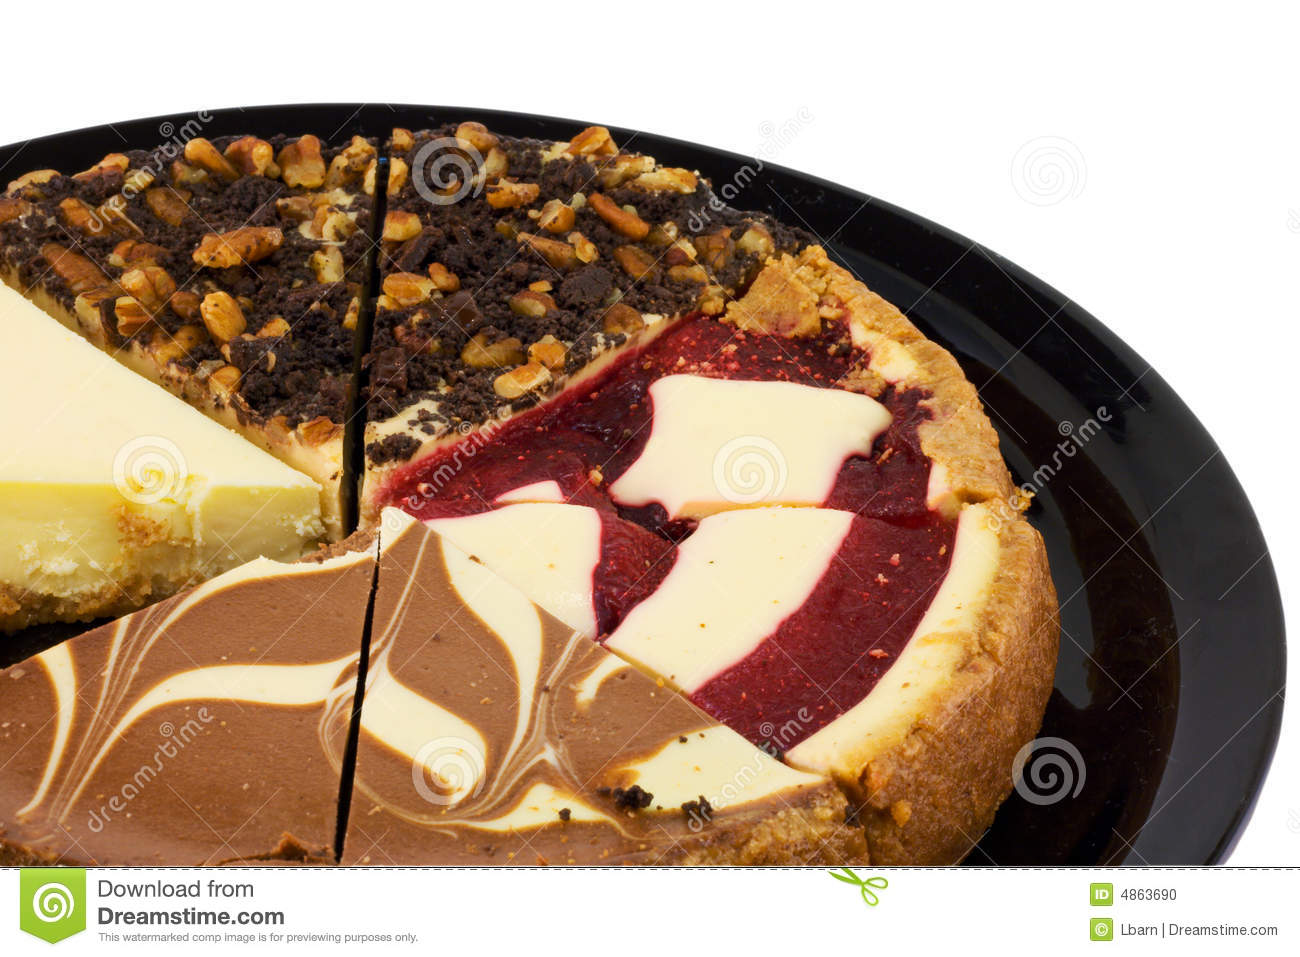 Assorted Cheesecake Slices stock photo Image of four 4863690